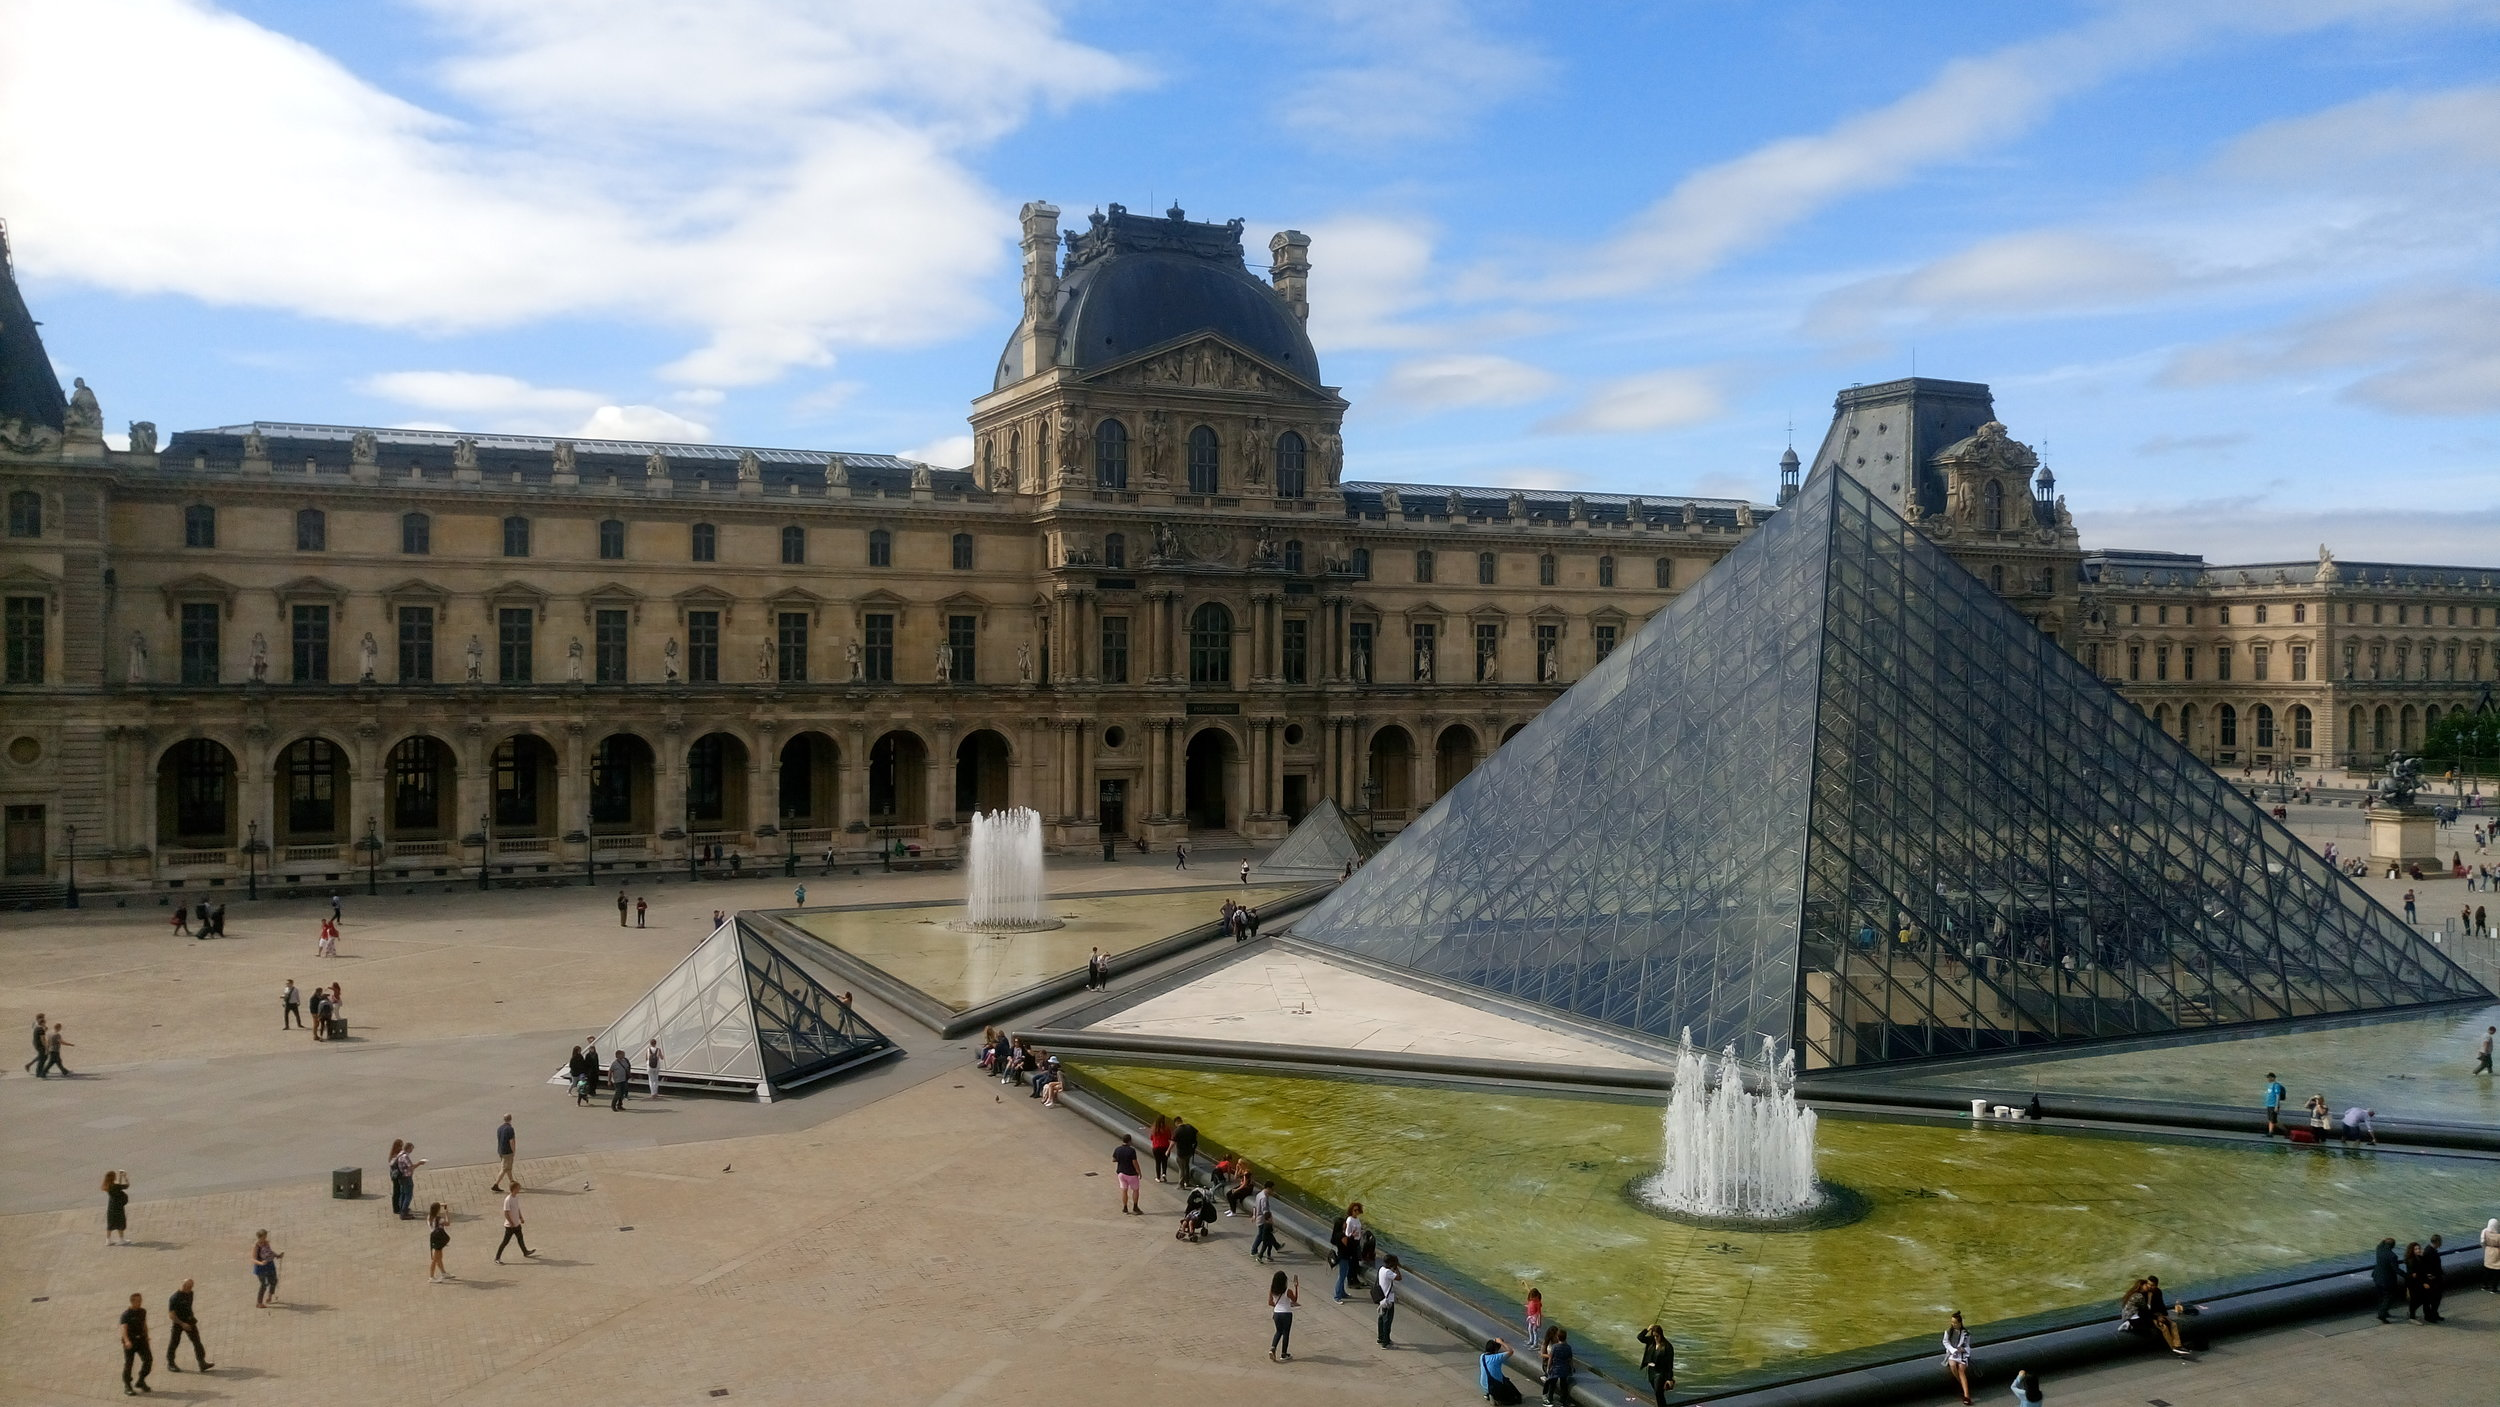 Early morning at the Louvre, Paris